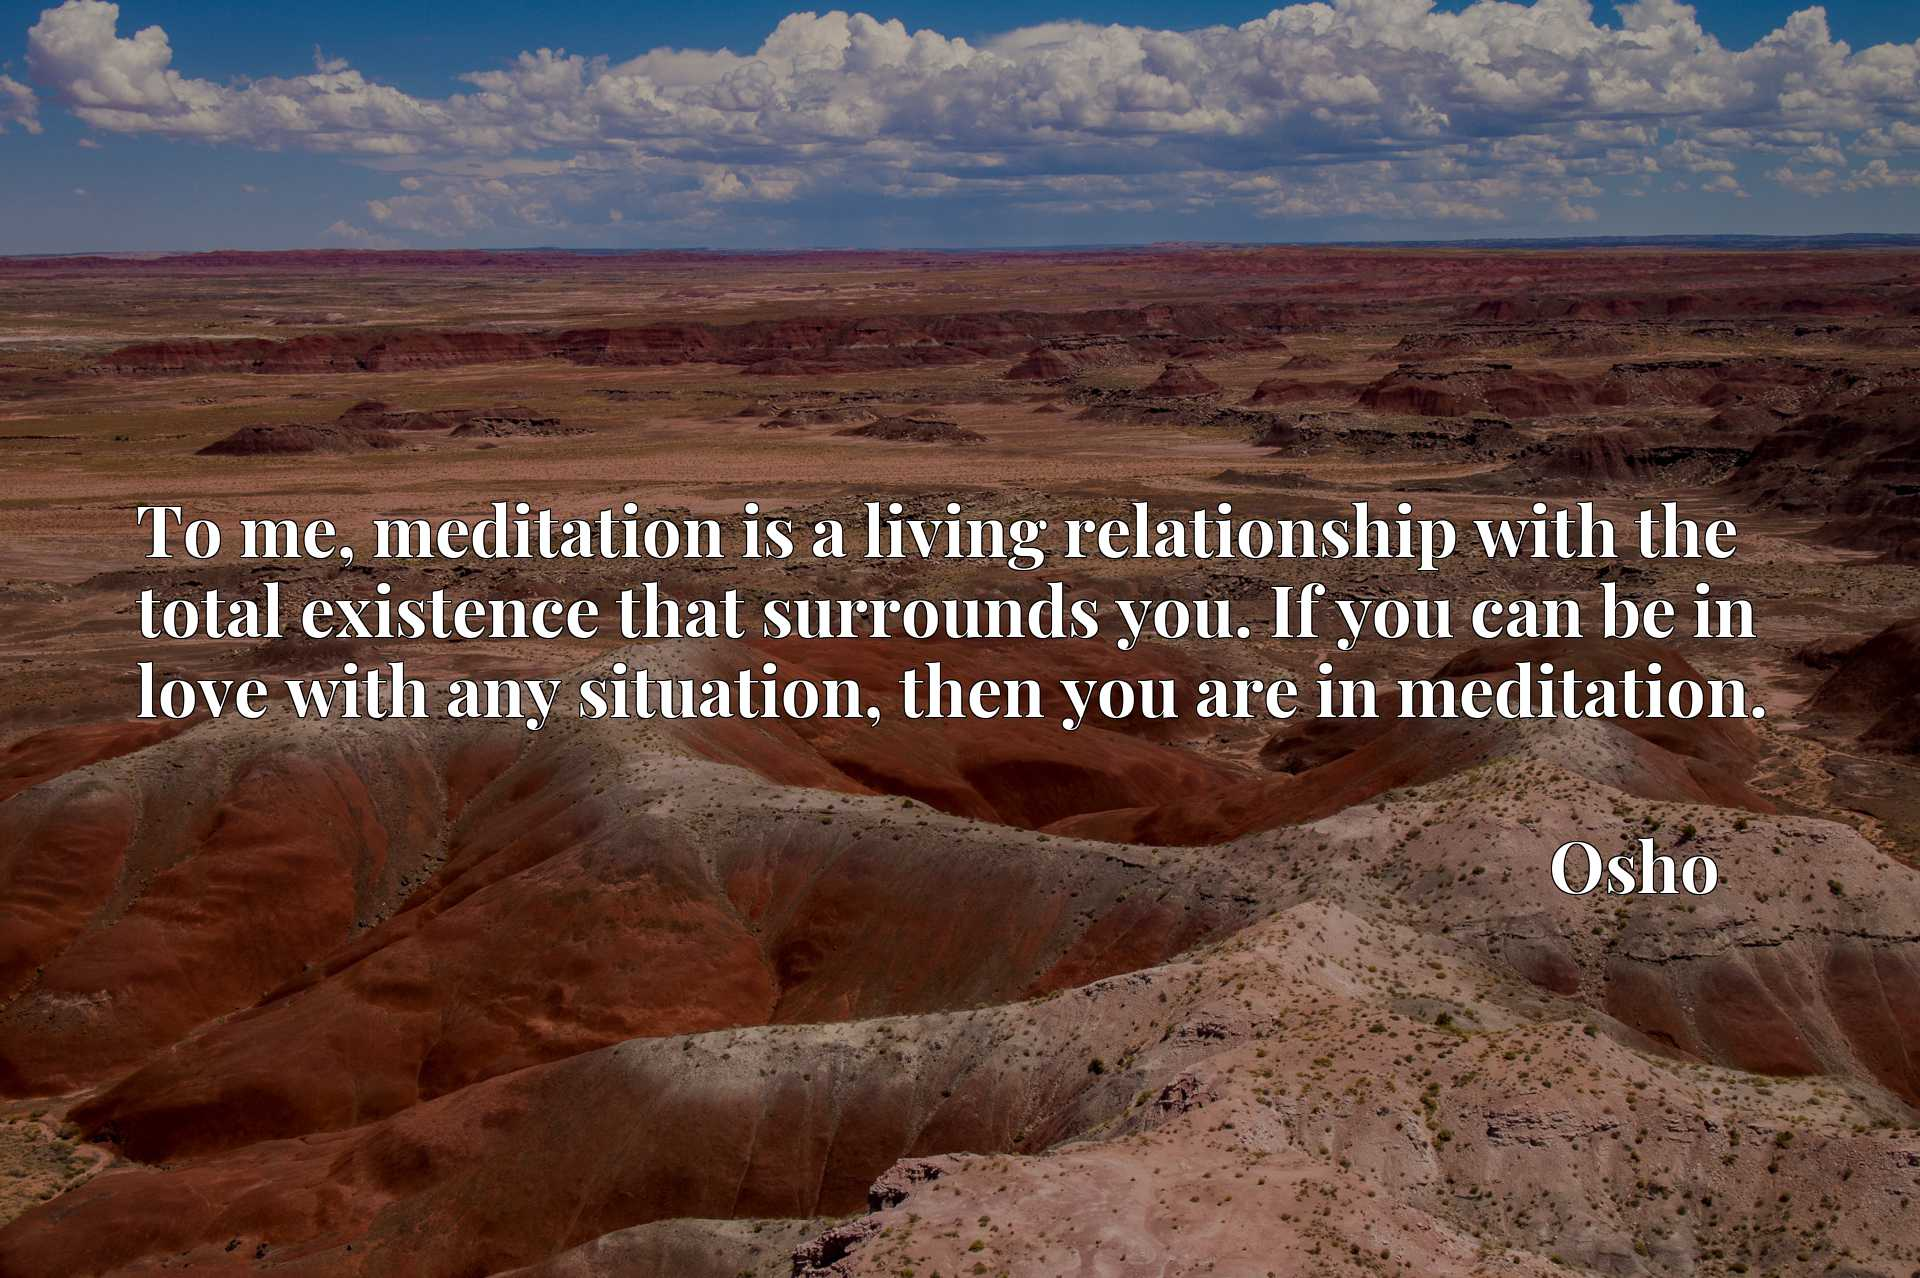 To me, meditation is a living relationship with the total existence that surrounds you. If you can be in love with any situation, then you are in meditation.